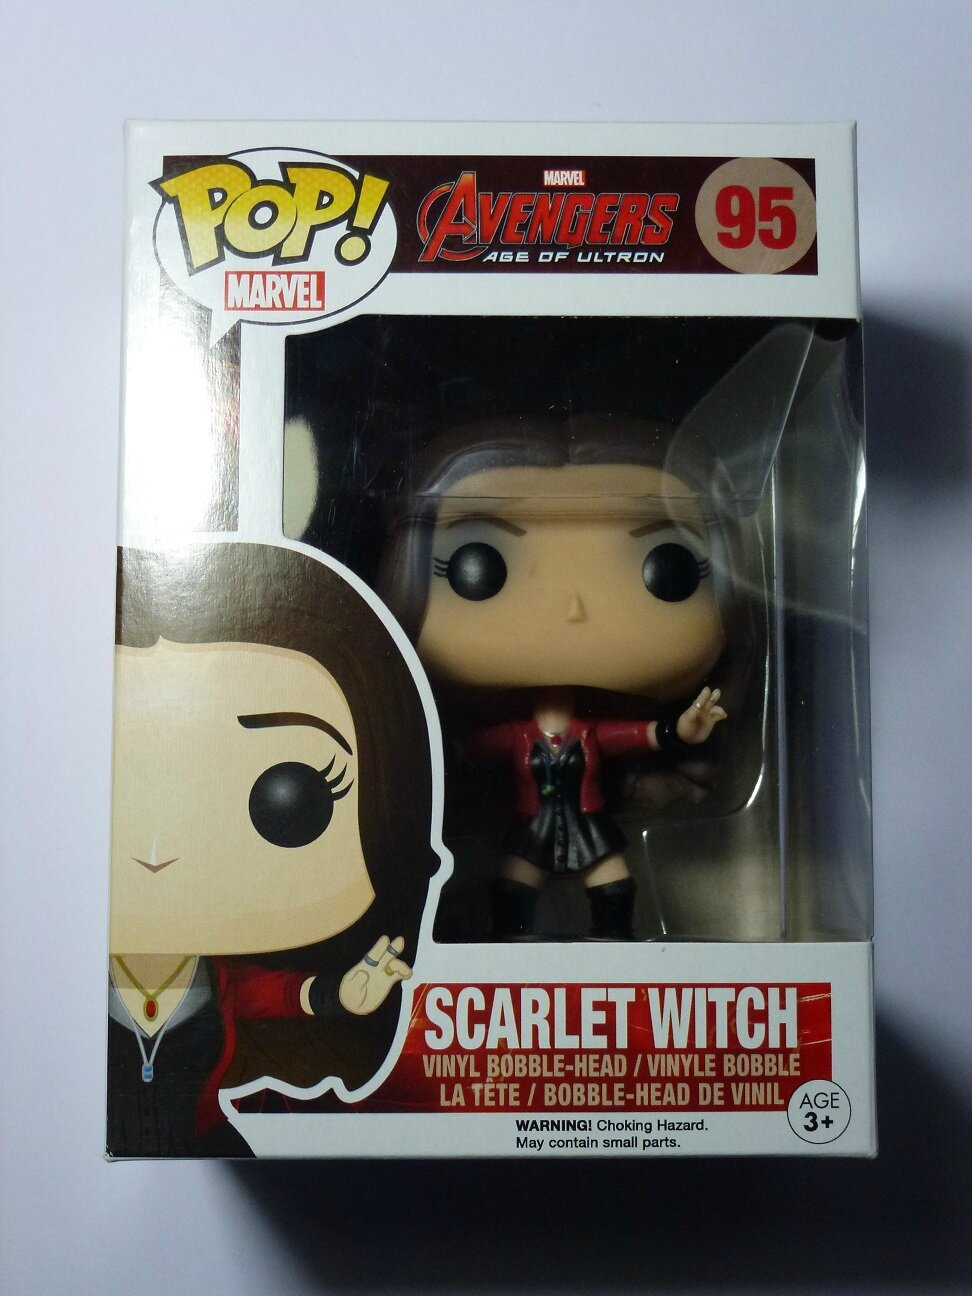 095-20170116-Avengers-Scarlet Witch